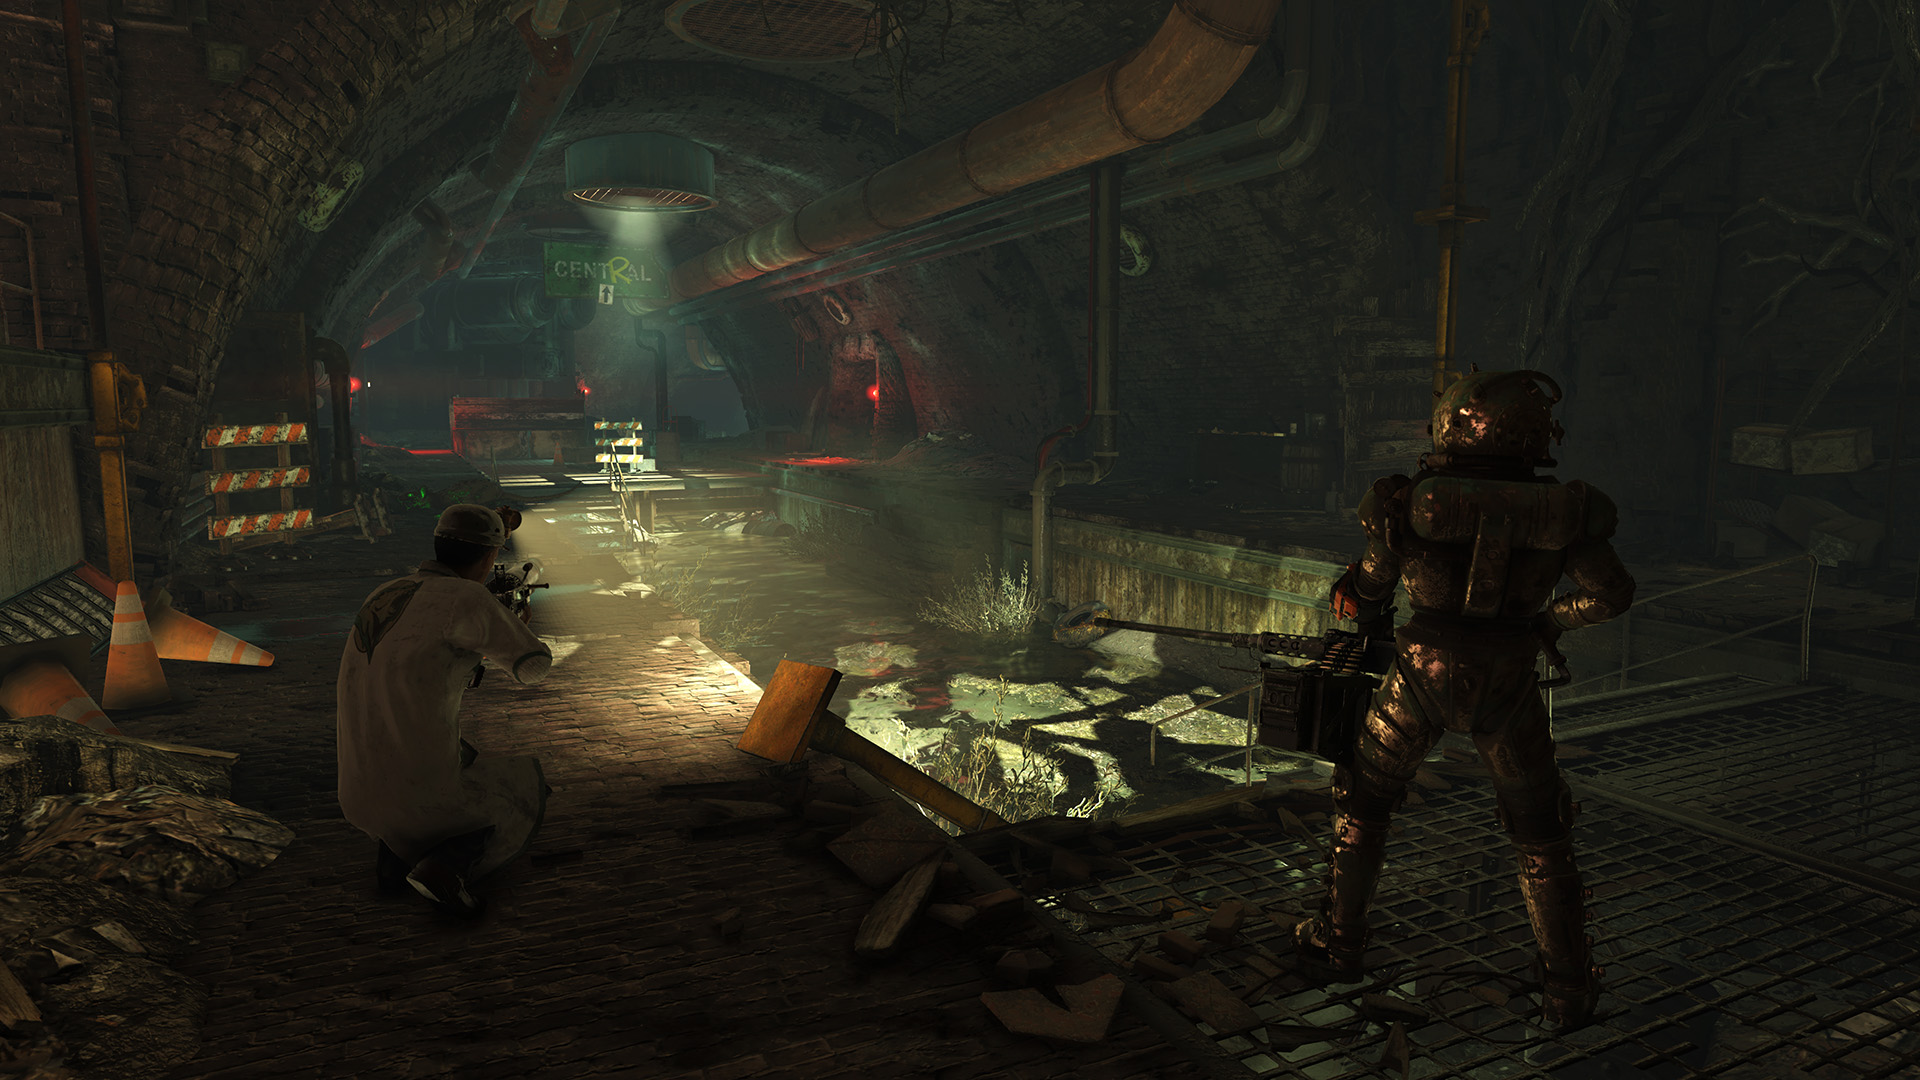 Fallout 76 Fallout 76 Inside The Vault The Burrows And Camera Preview